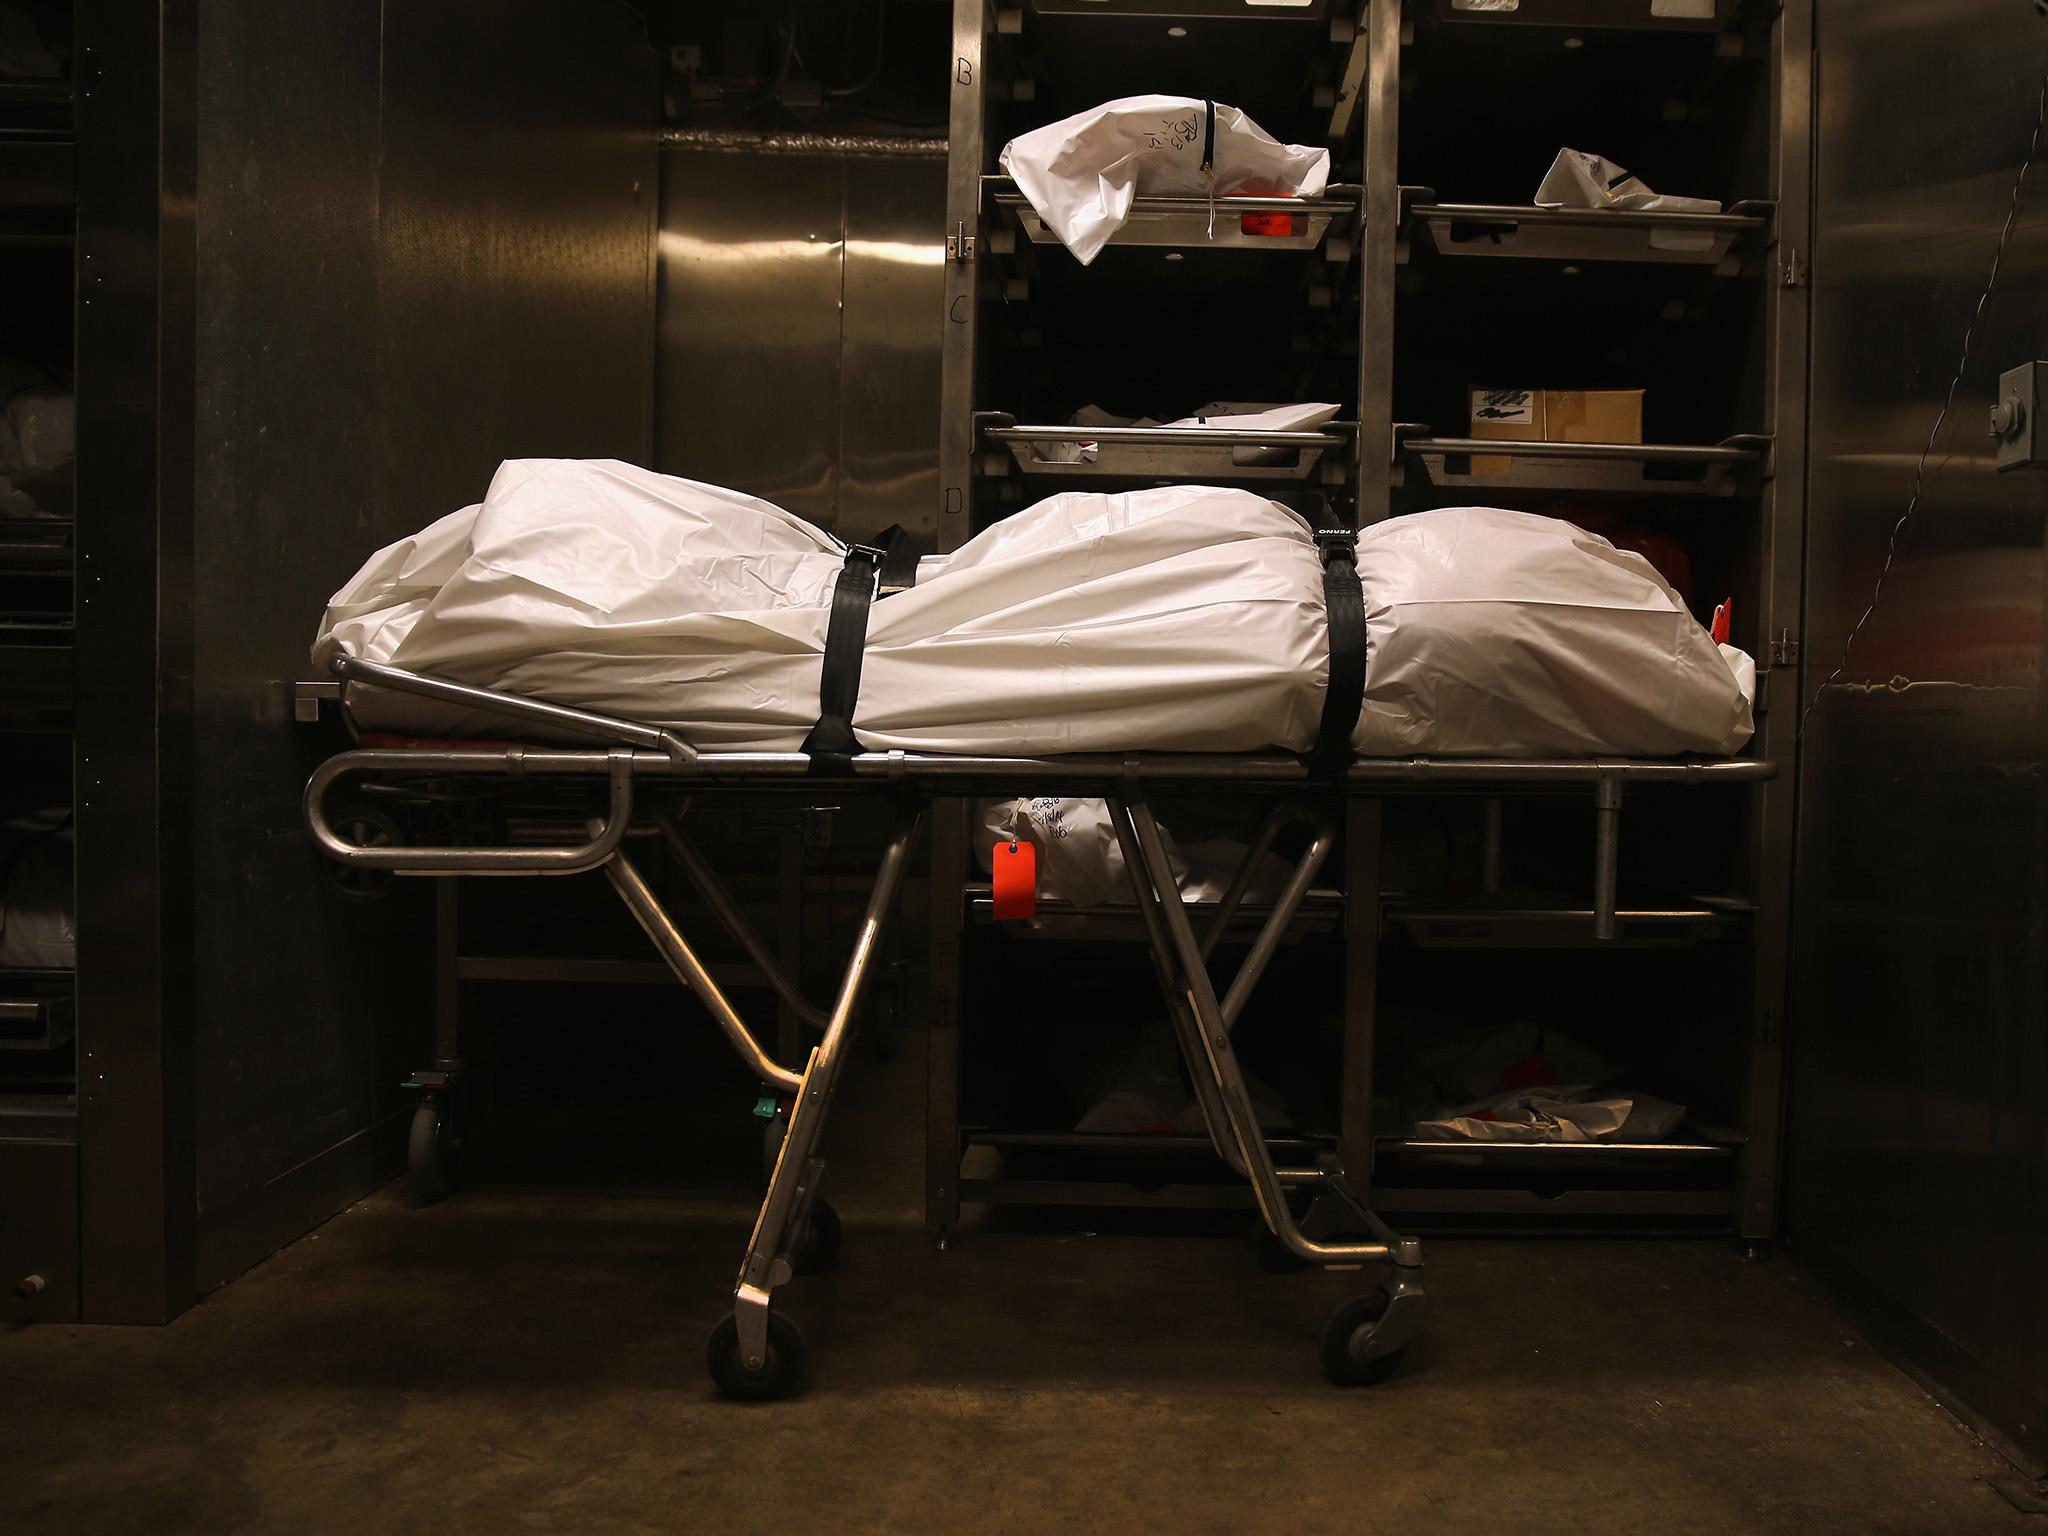 'Dead' woman found alive in morgue fridge